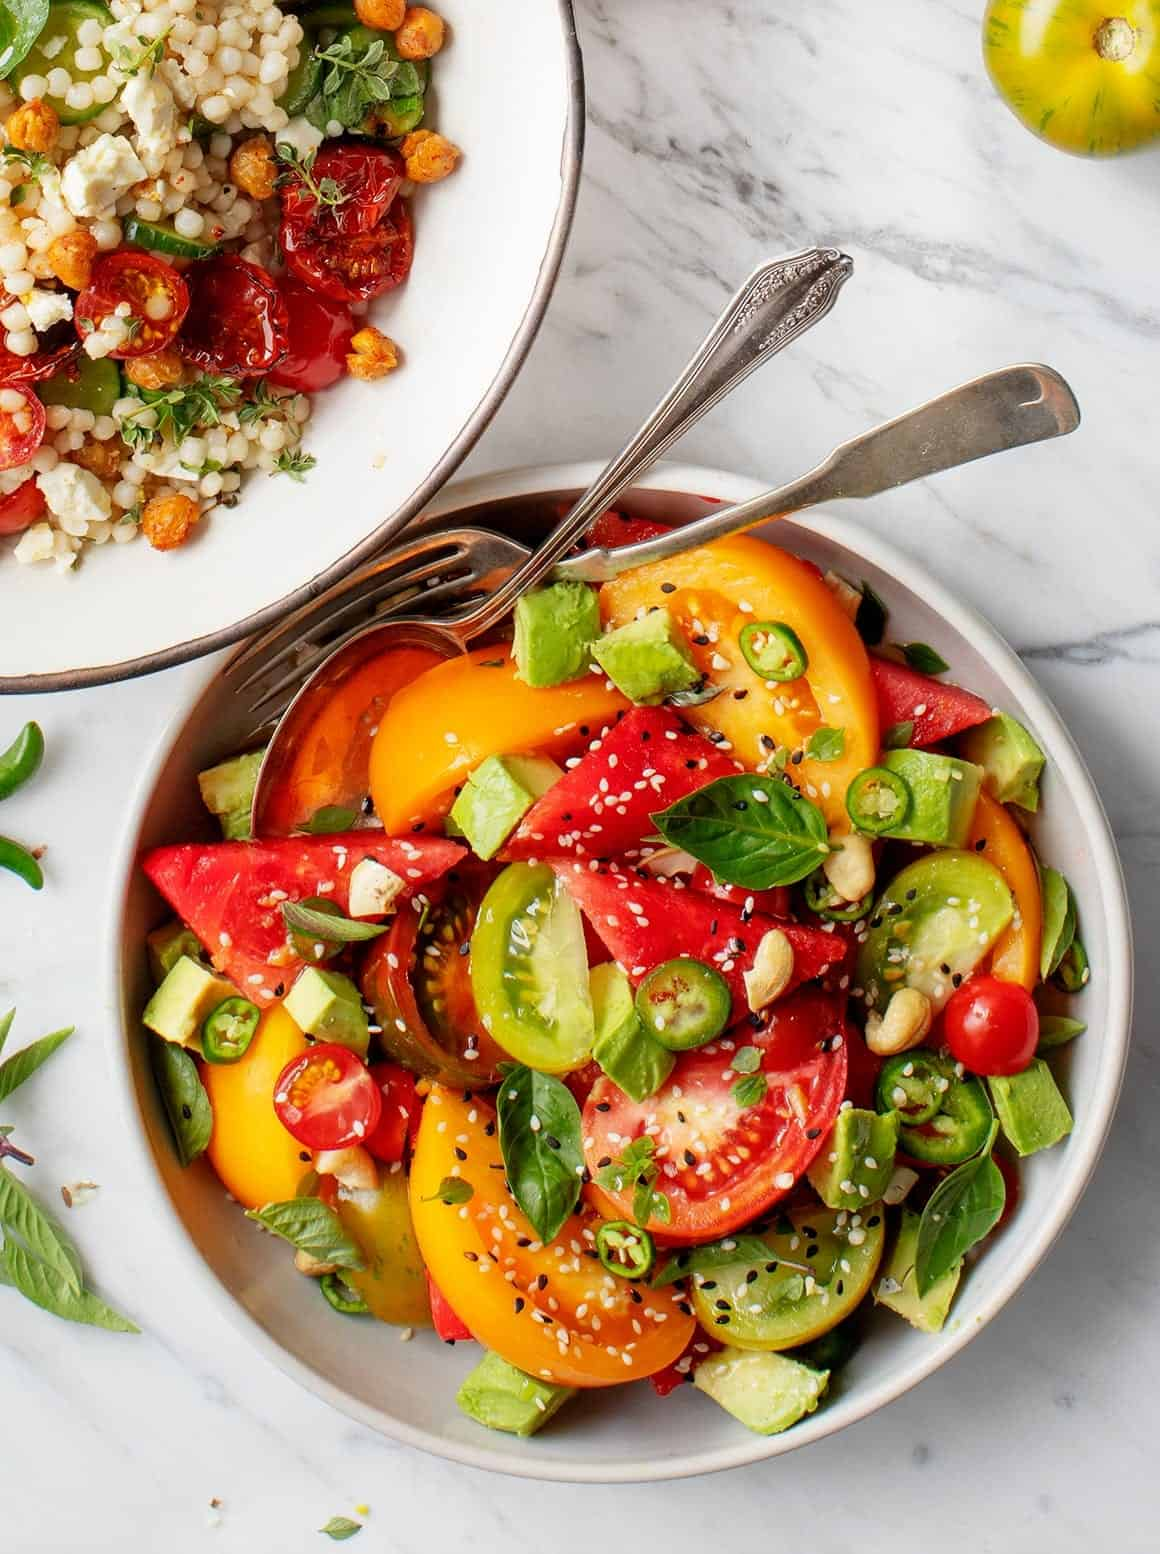 Spicy Watermelon Tomato Salad in a bowl with serving utensils